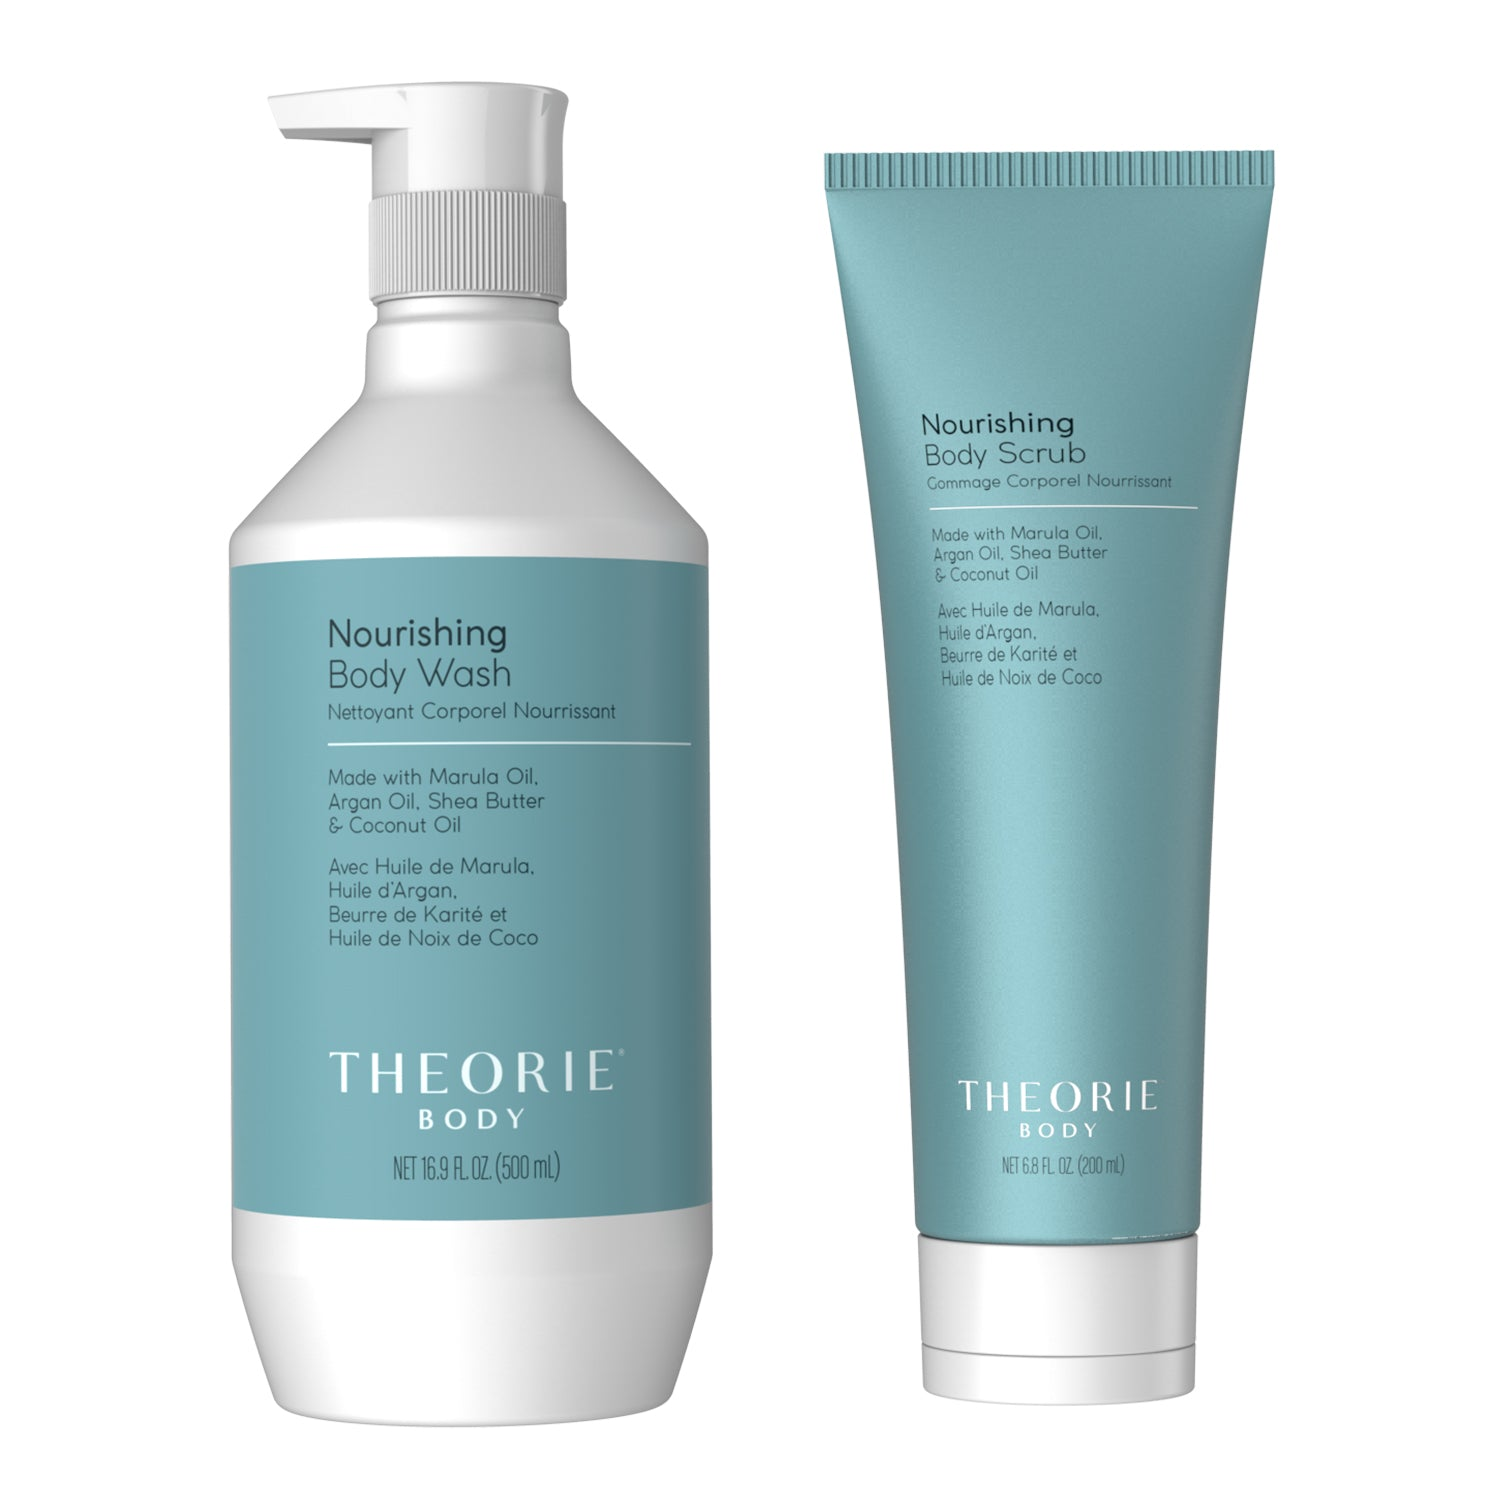 Theorie Body - Nourishing Body Scrub & Wash Set